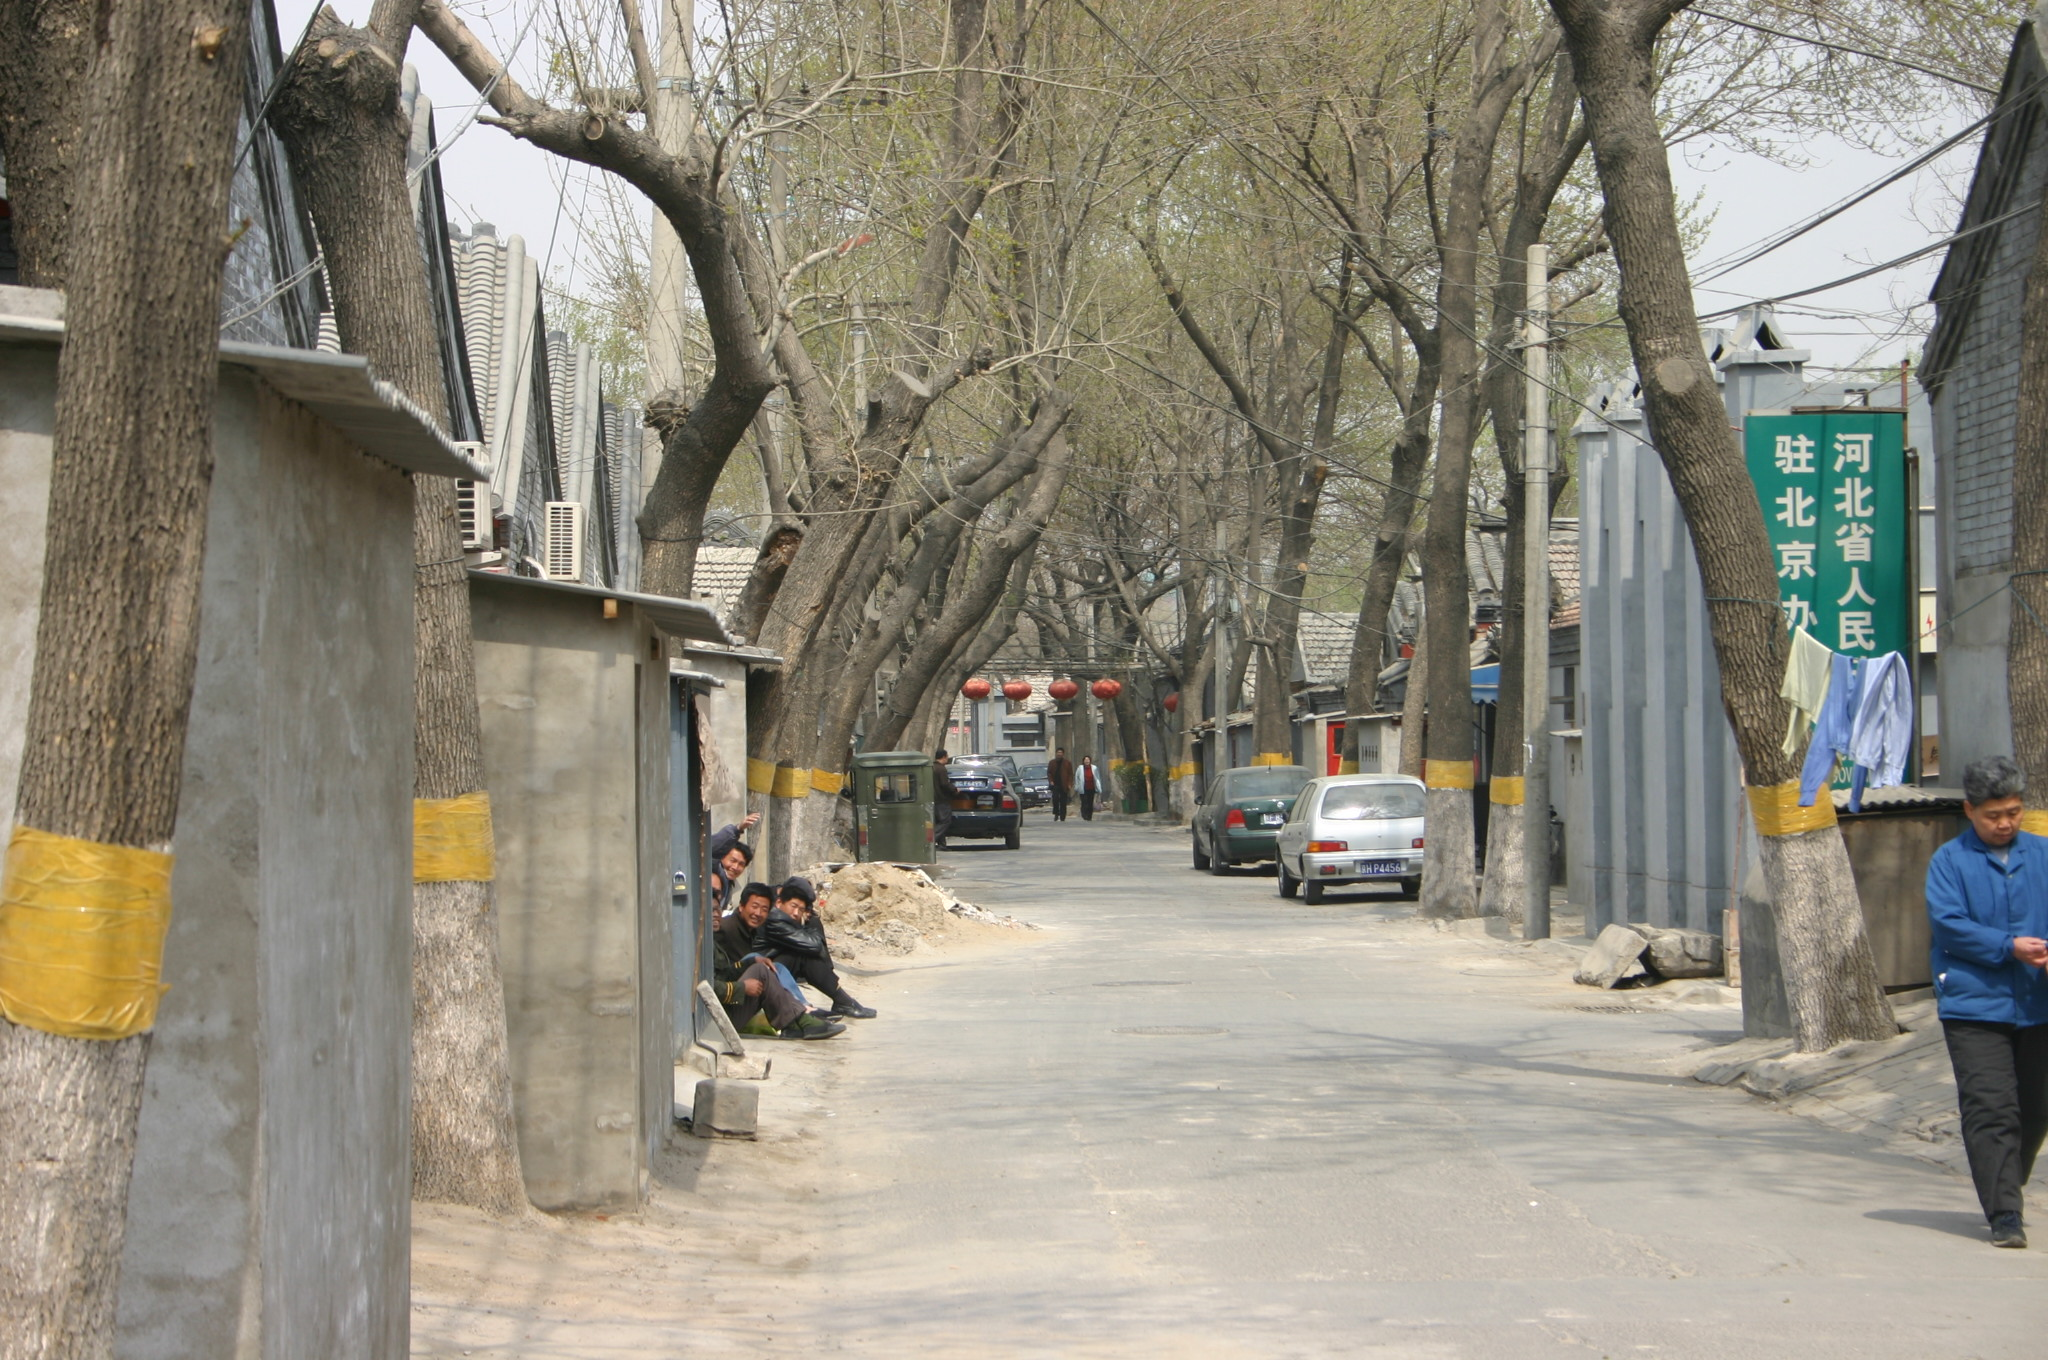 Hutong street. Our hotel was to the right.